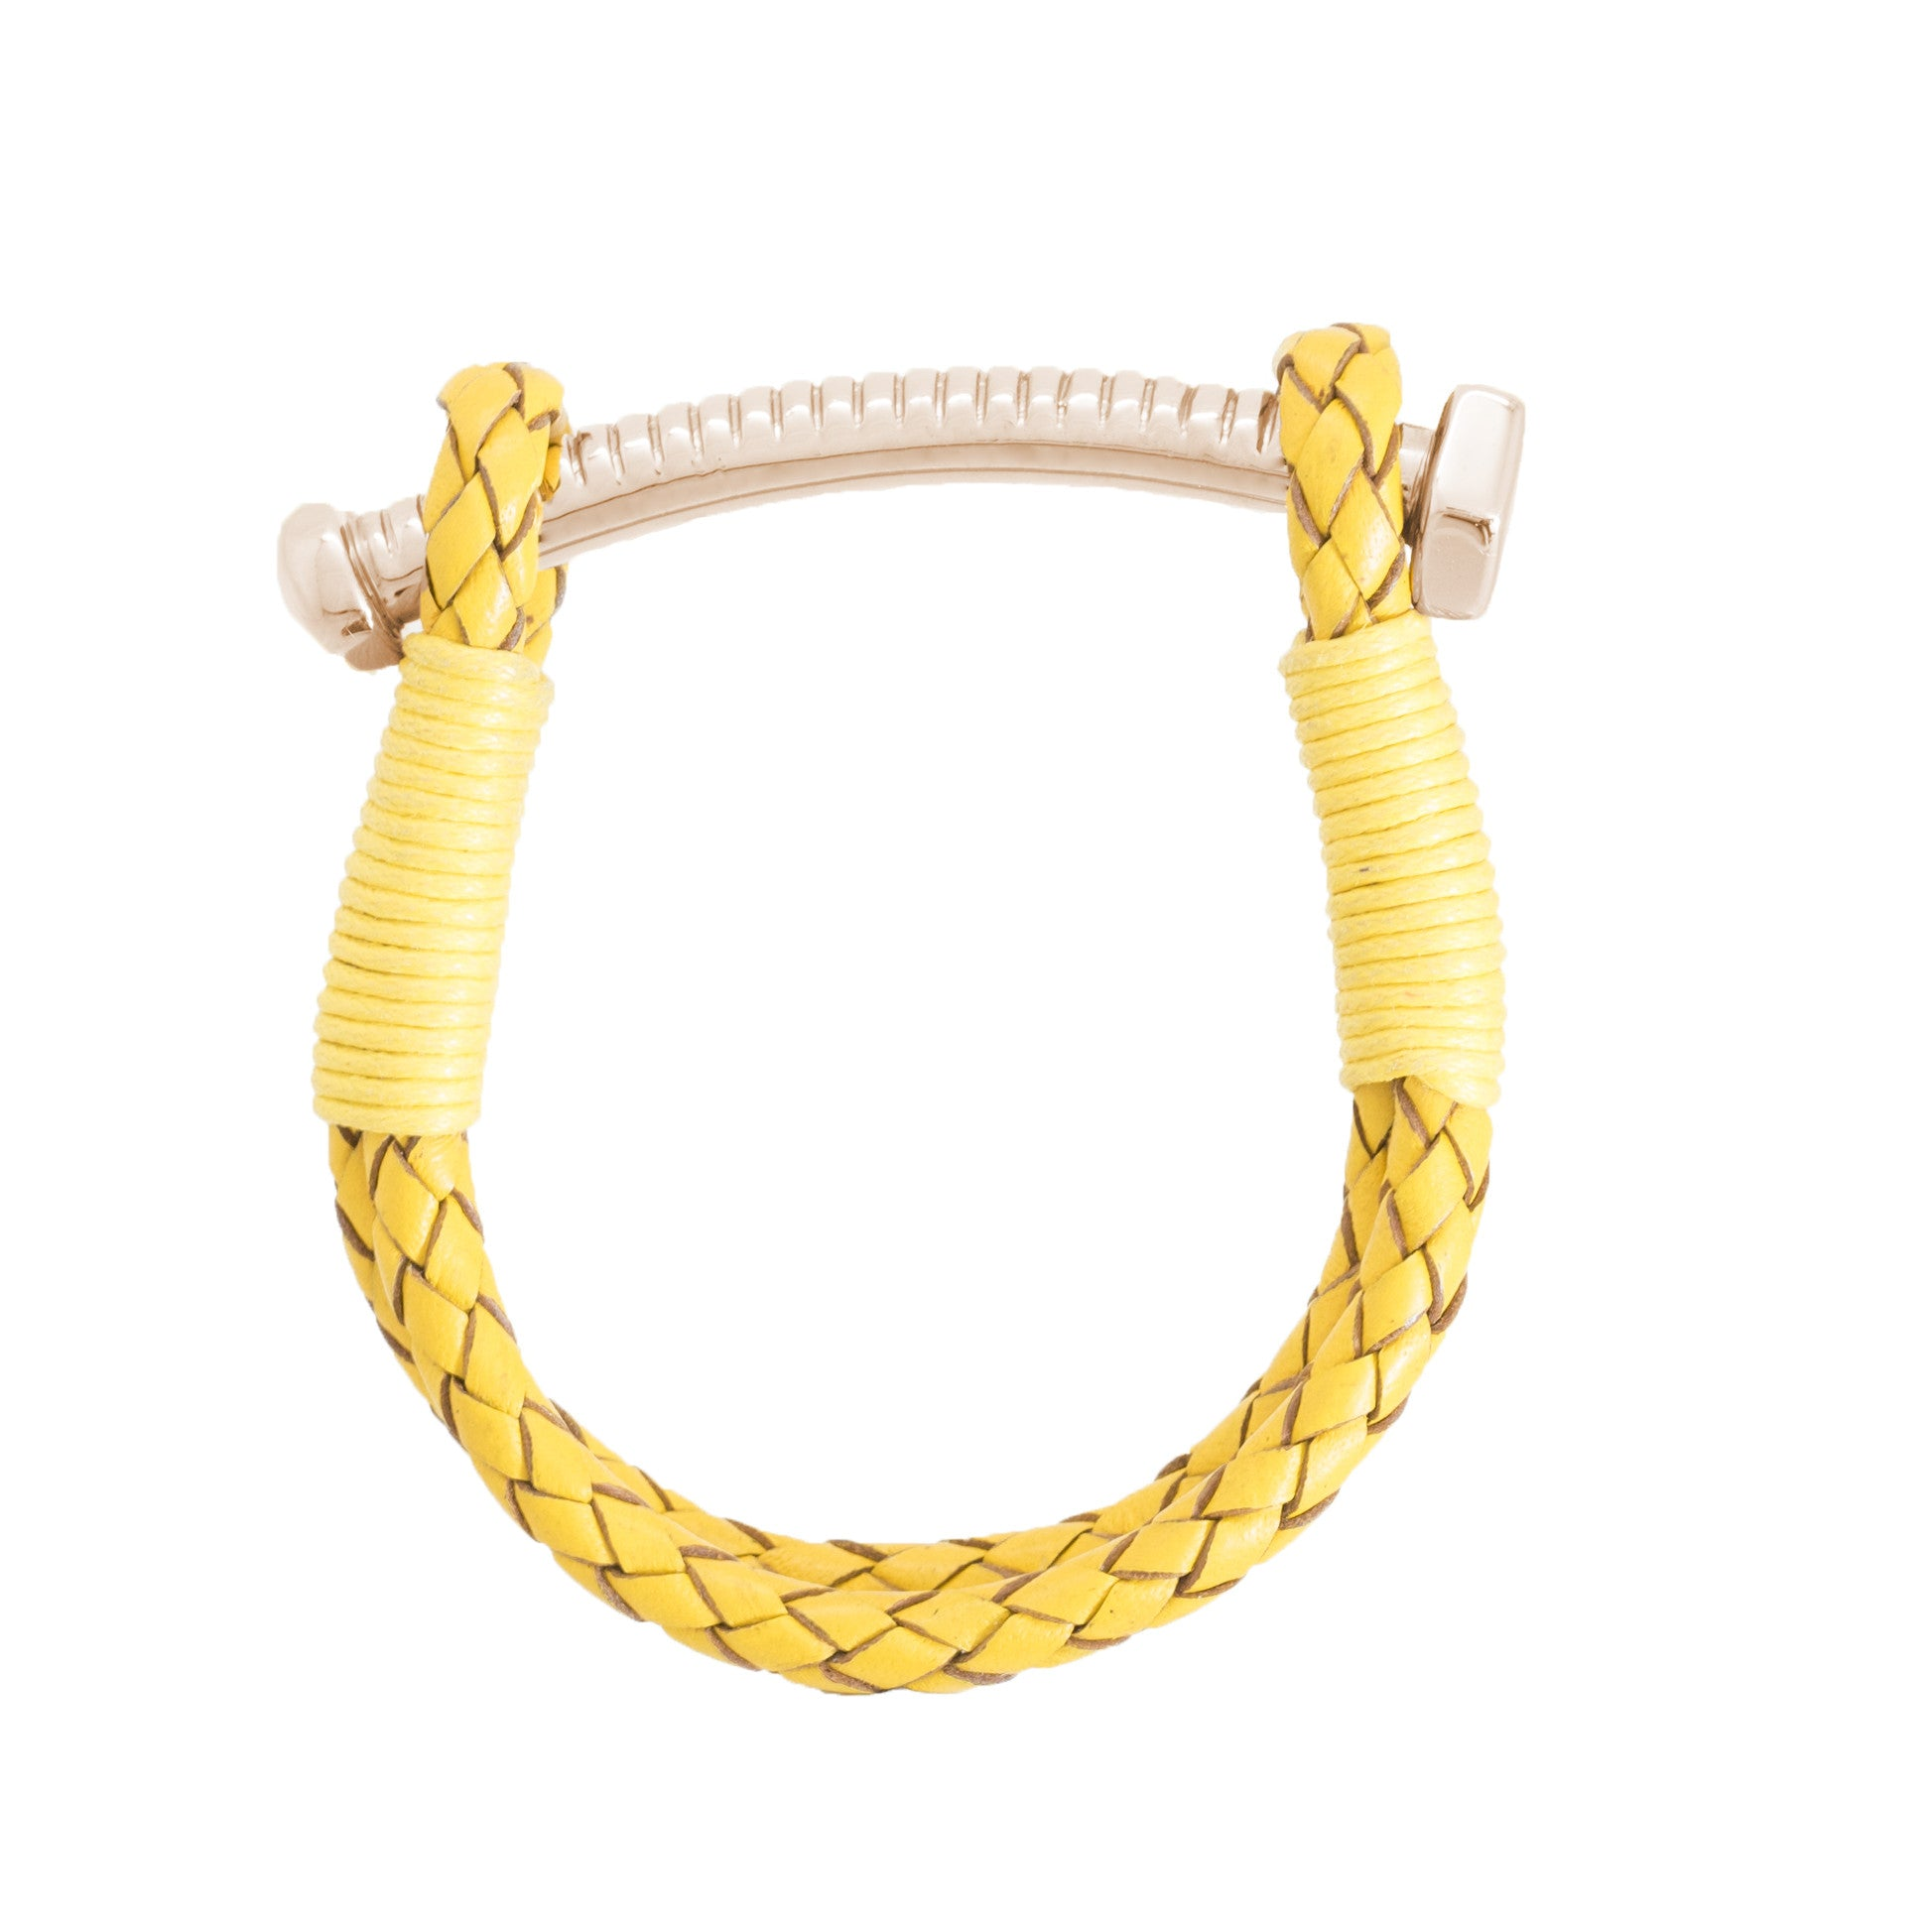 Nut and Bolt Mustard Leather Bracelet - Carrie K.